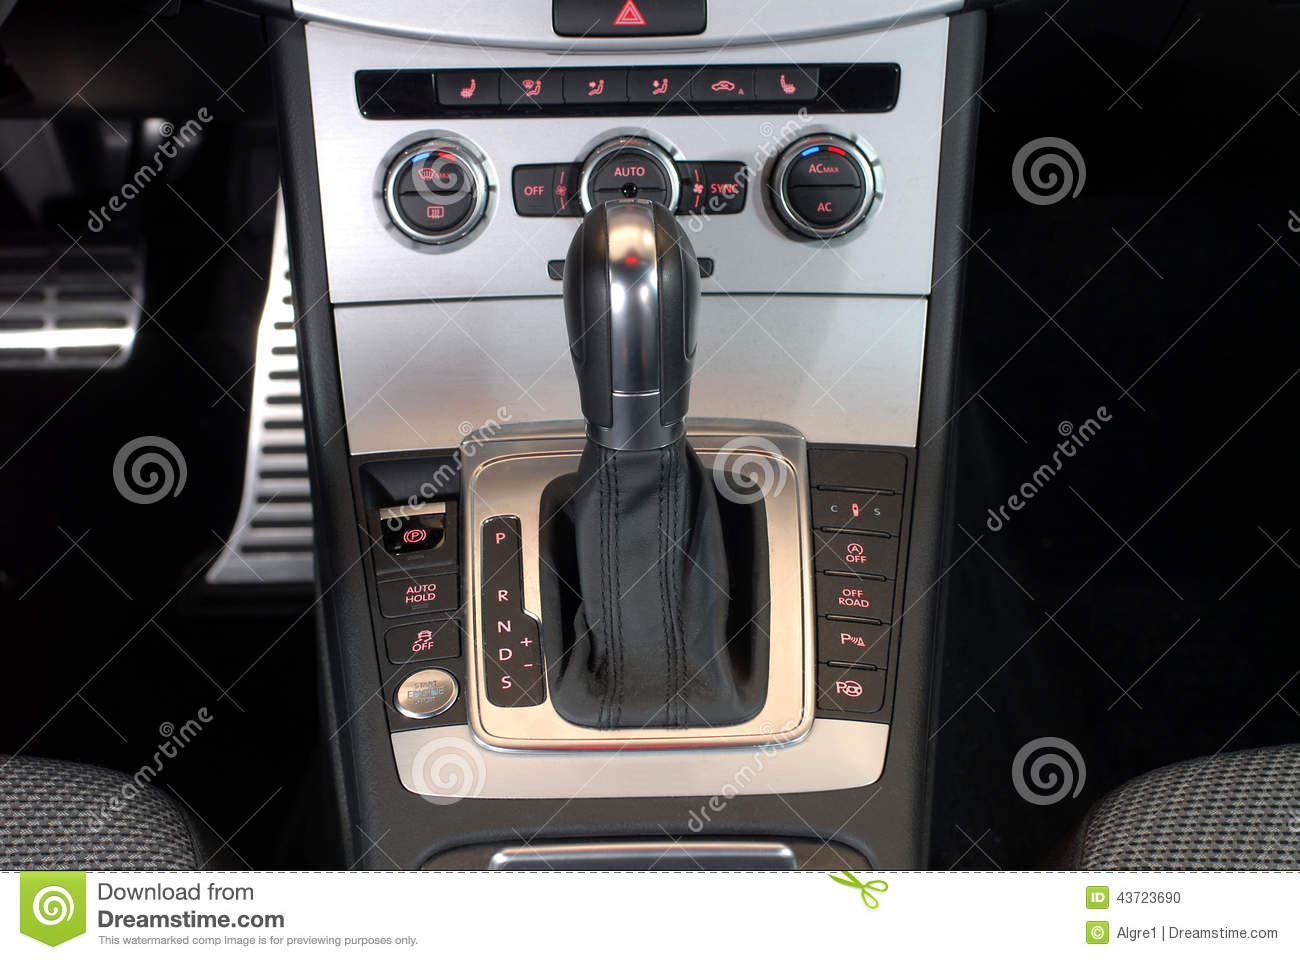 Automatic gear shift handle